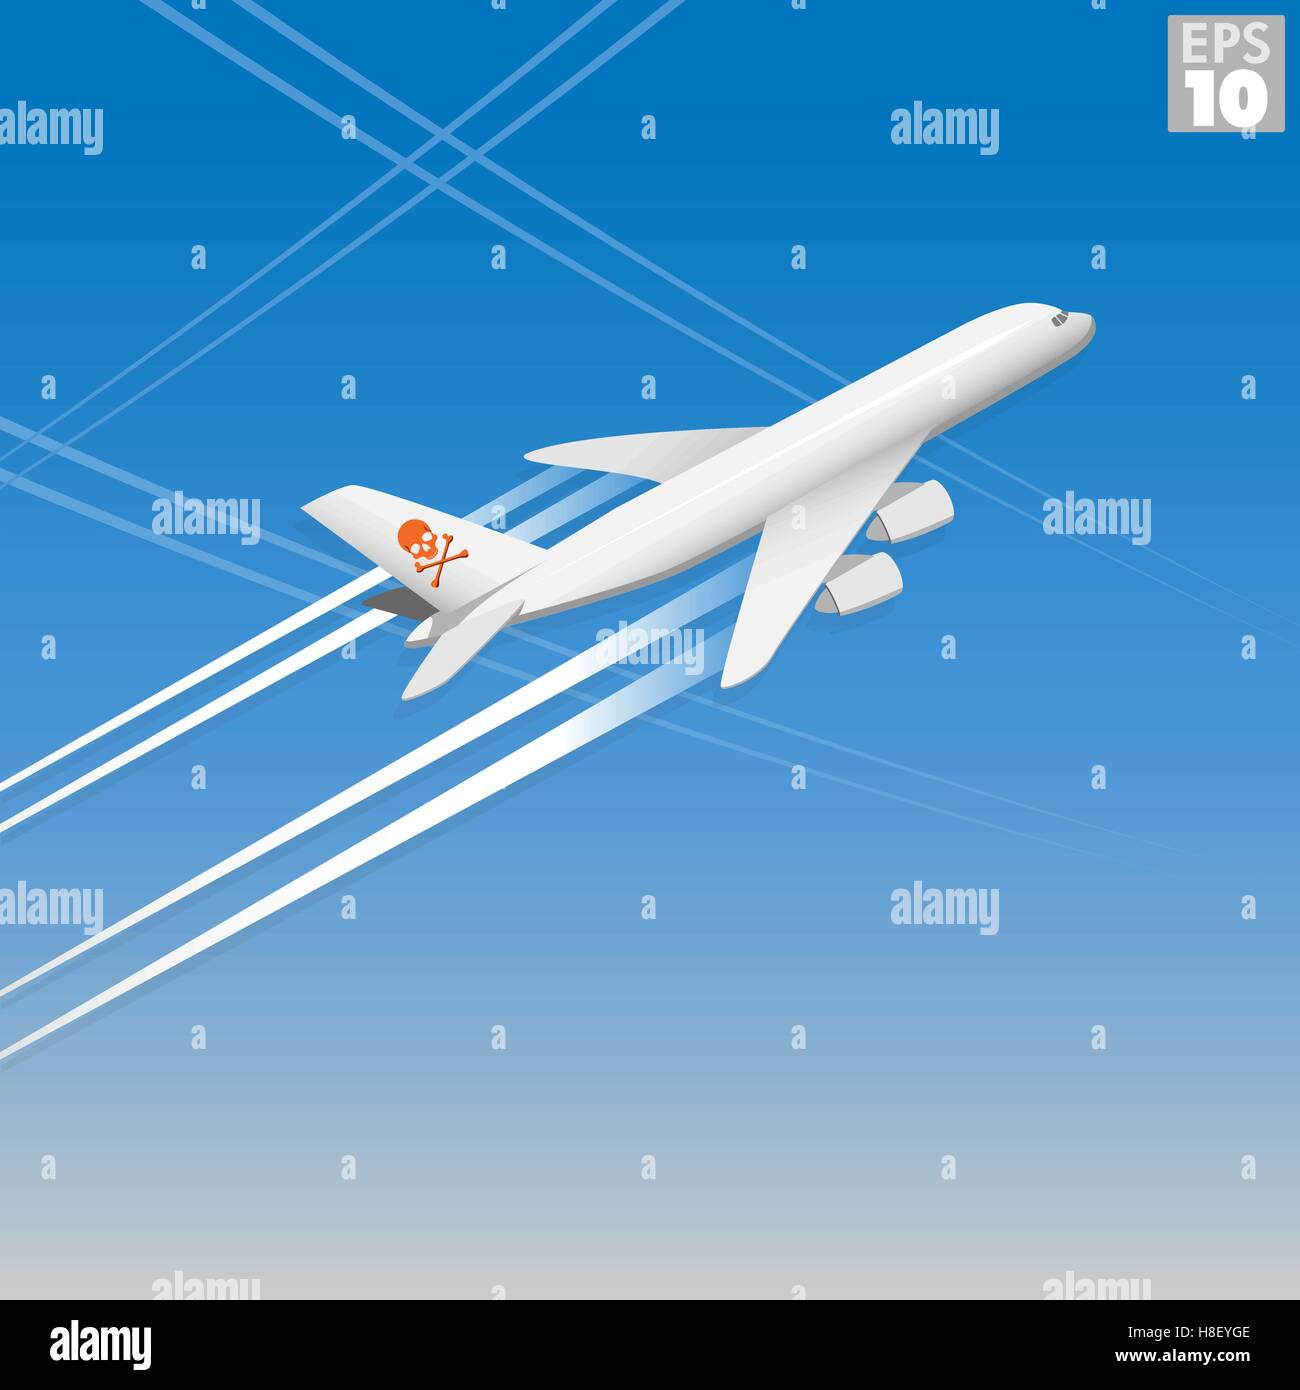 Airplane releasing chemtrails into the atmosphere - Stock Vector